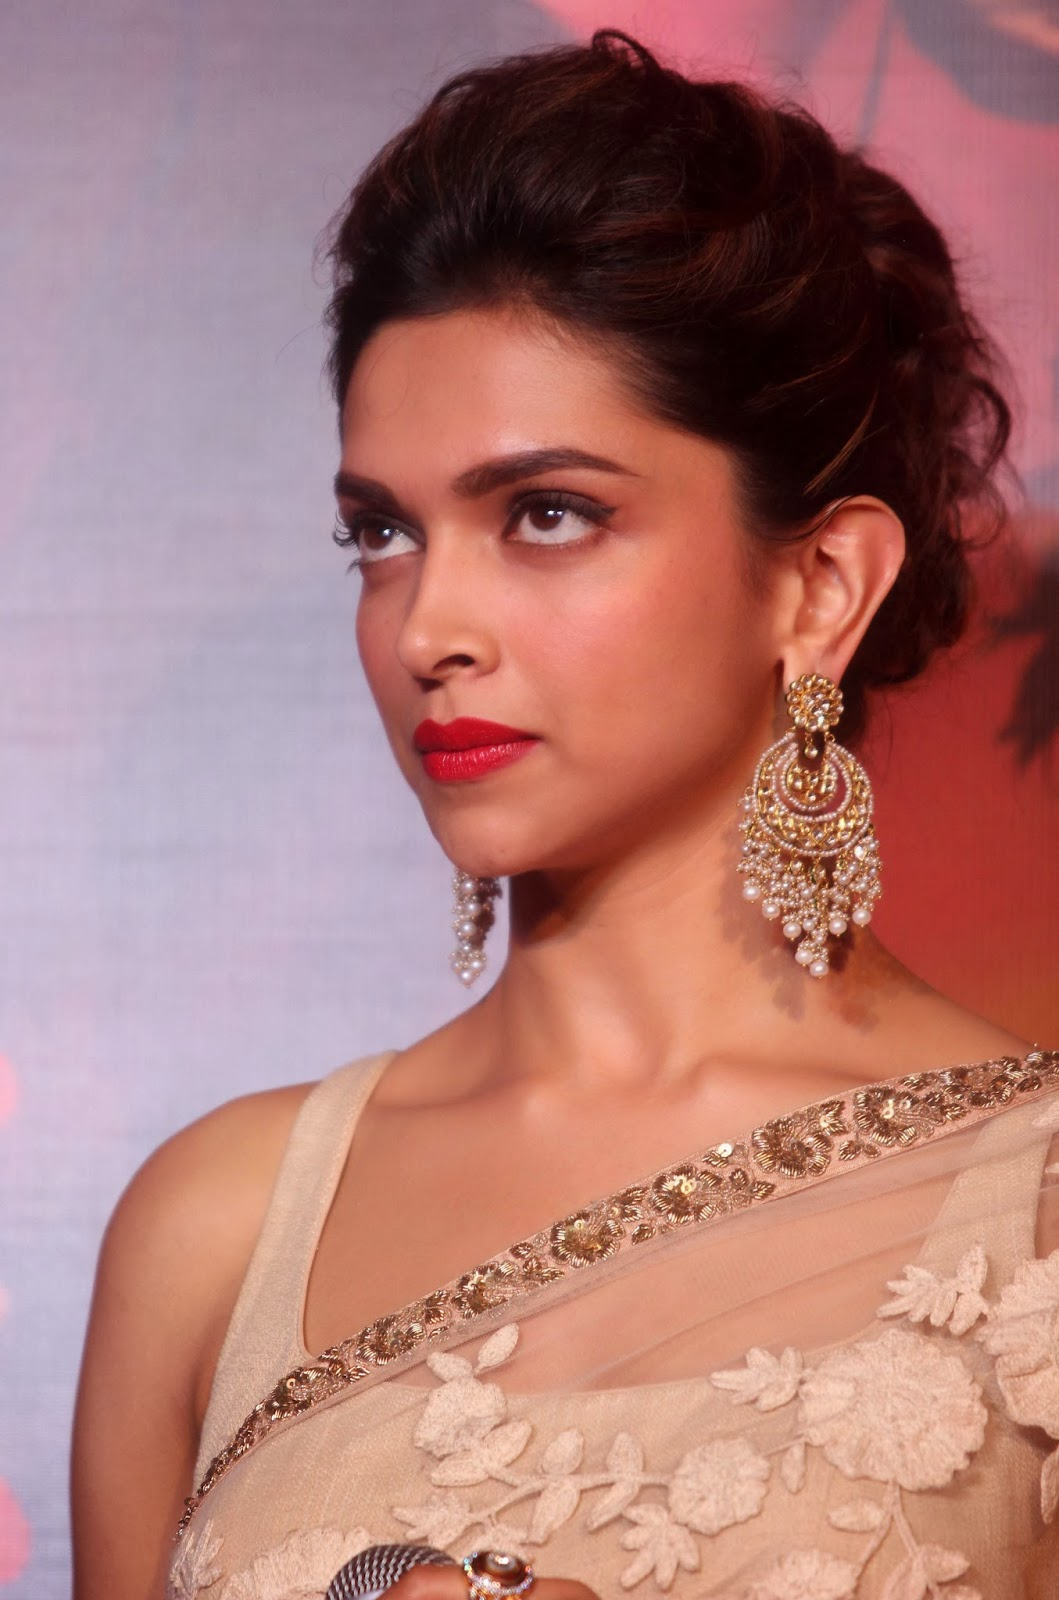 Bollywood Actress Deepika Padukone Hot Smiling Red Lips Face Closeup